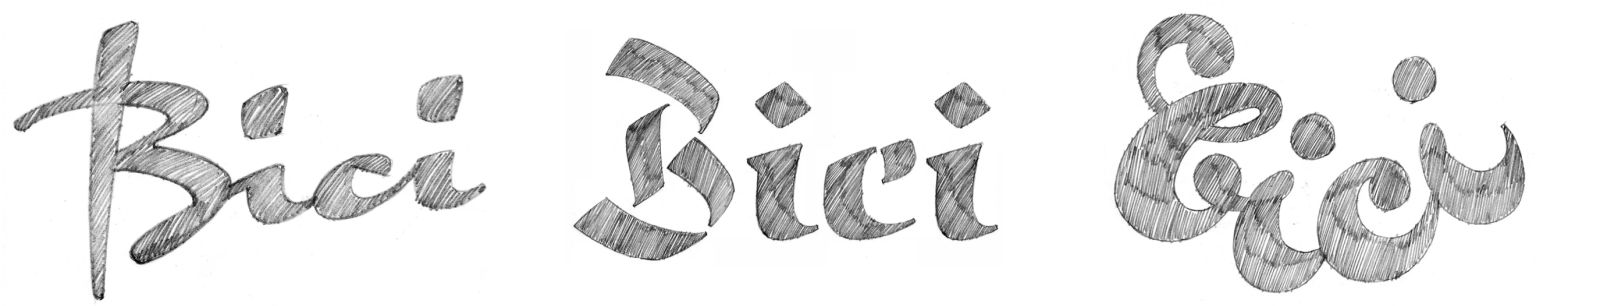 Bici sketches banner